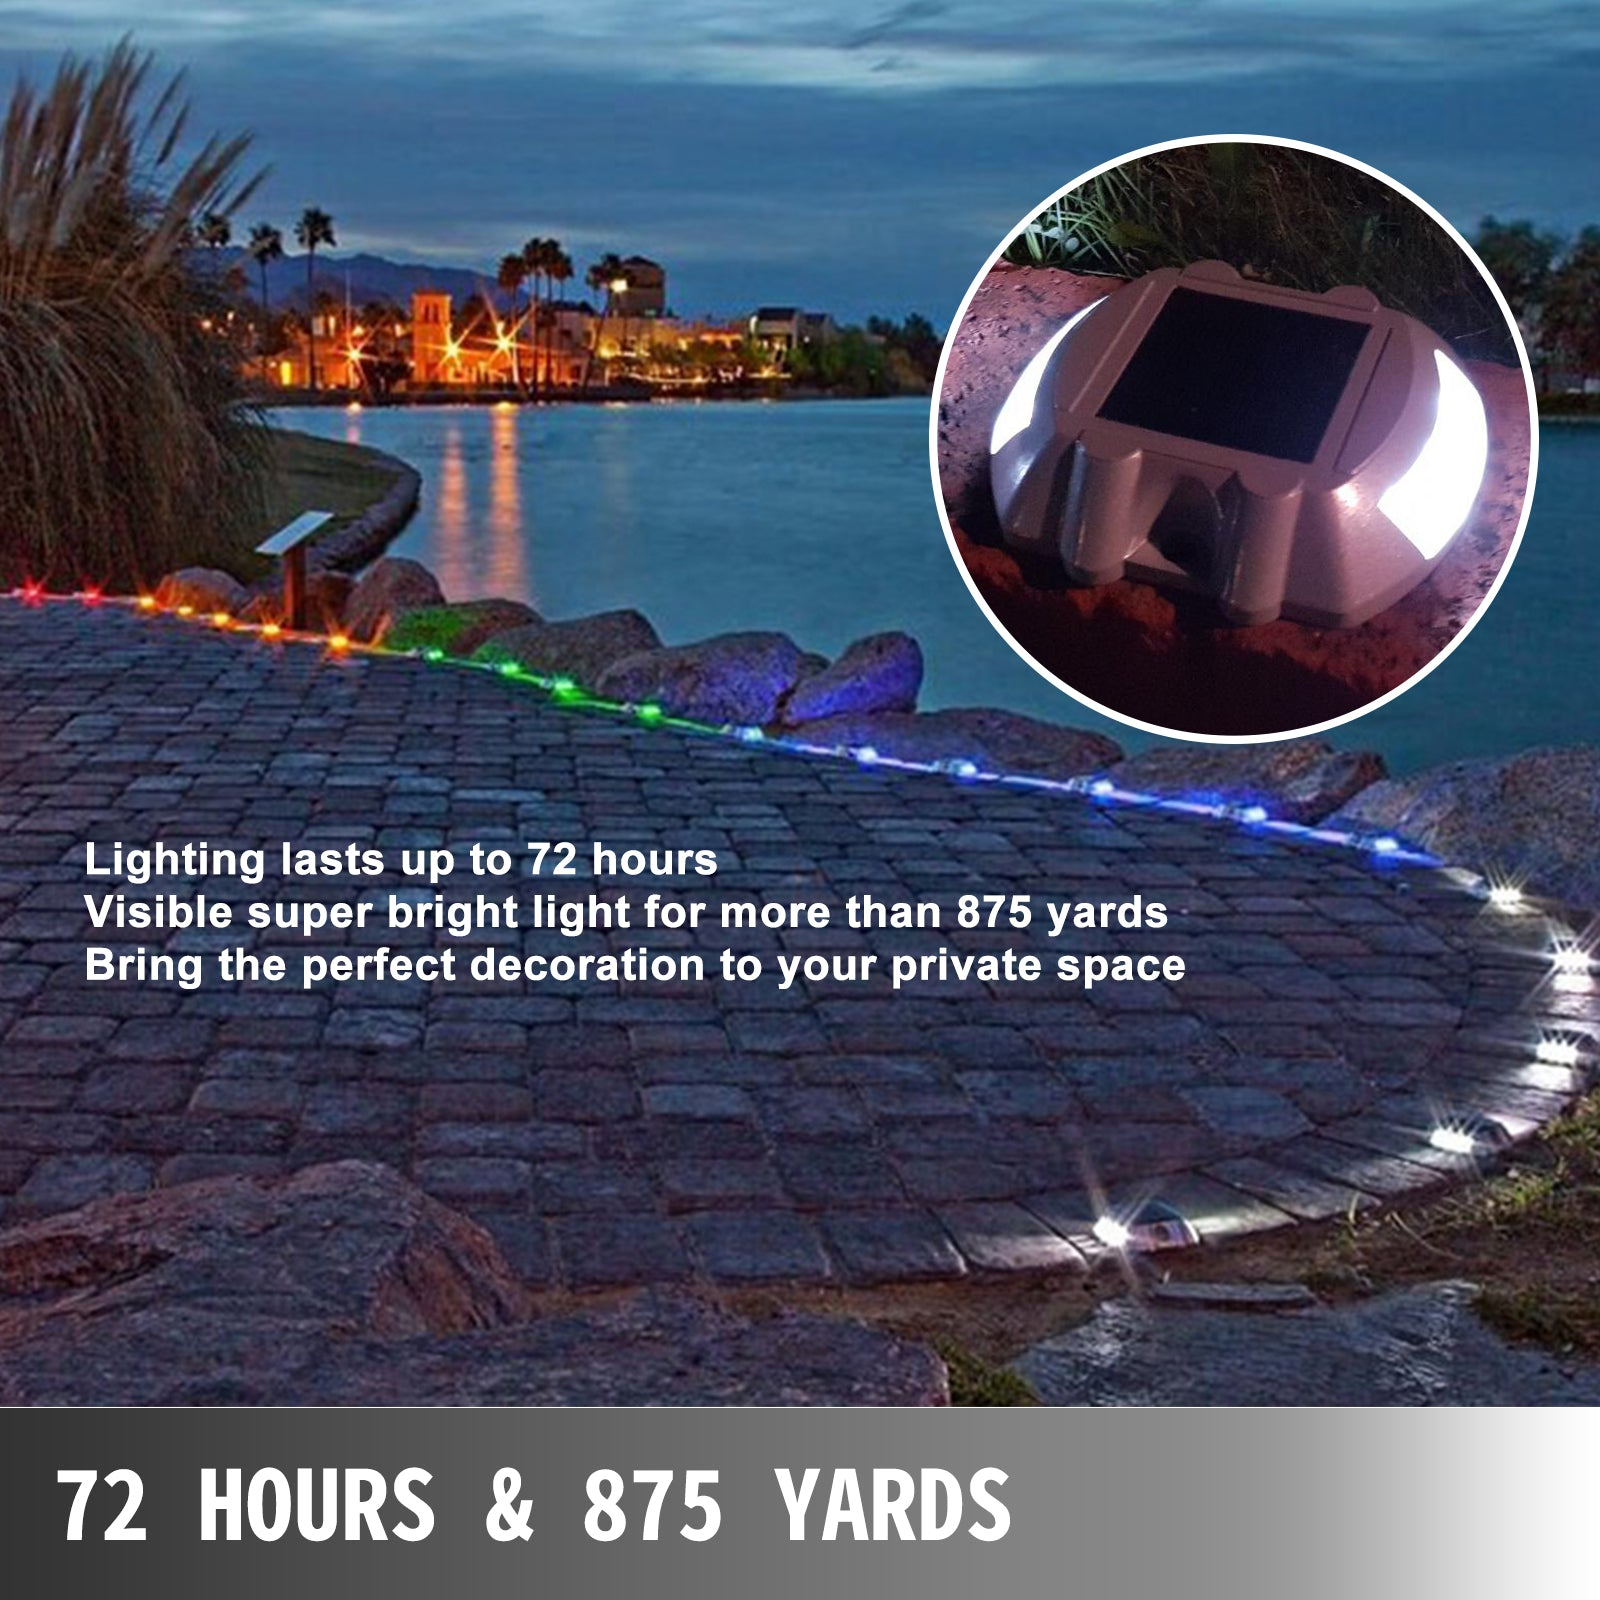 Driveway Lights, Solar Dock Lights 12-pack, Pathway Lights With Switch In White